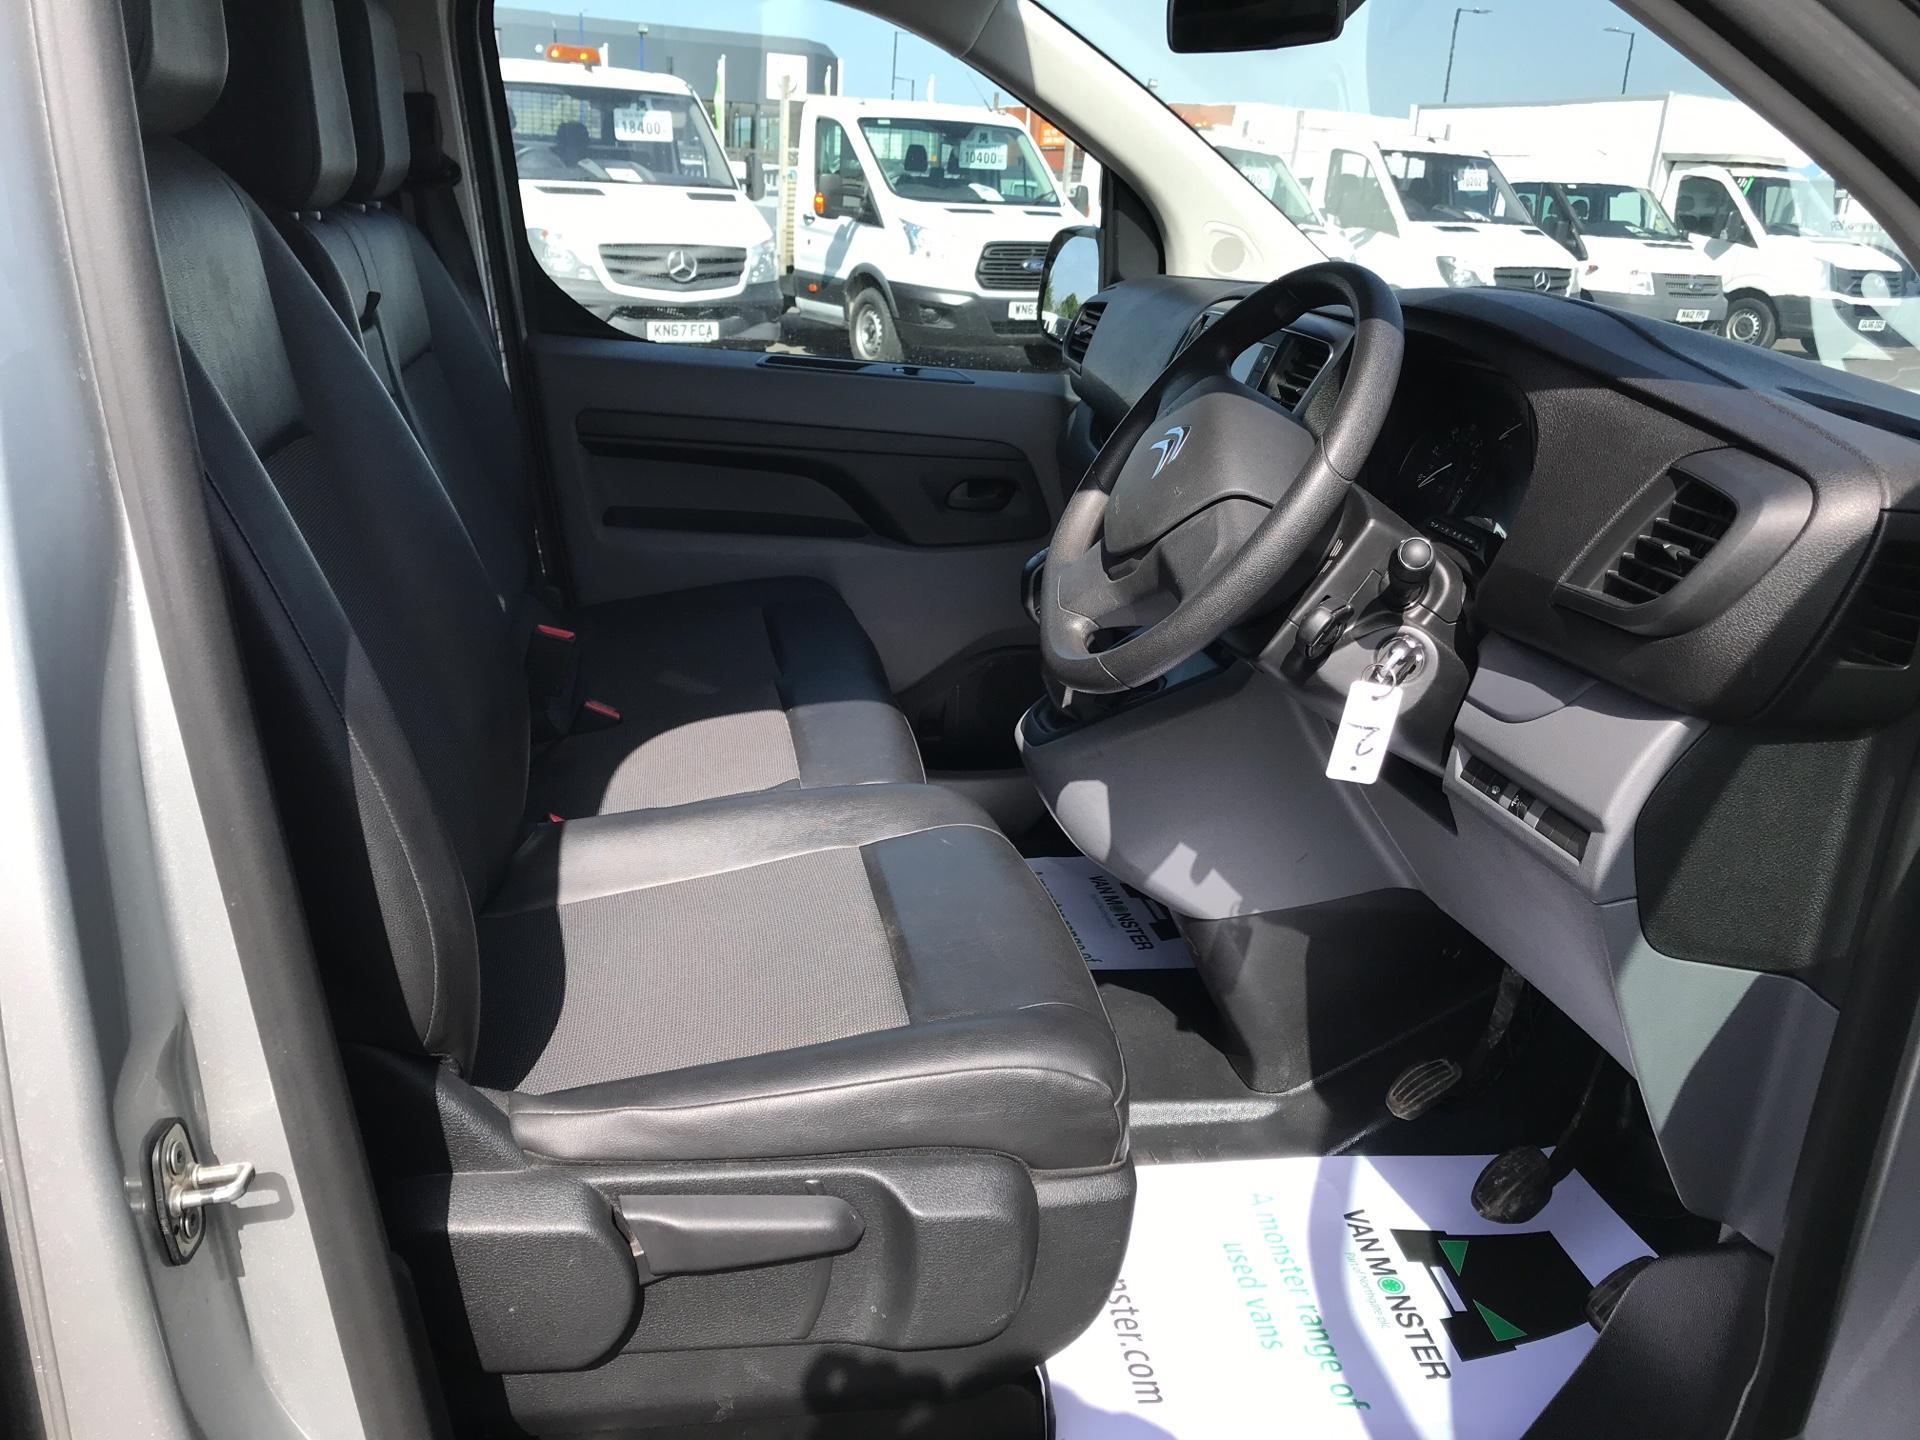 2017 Citroen Dispatch 1000 1.6 Bluehdi 95 Van Enterprise Euro 6 (YJ67WCV) Image 9